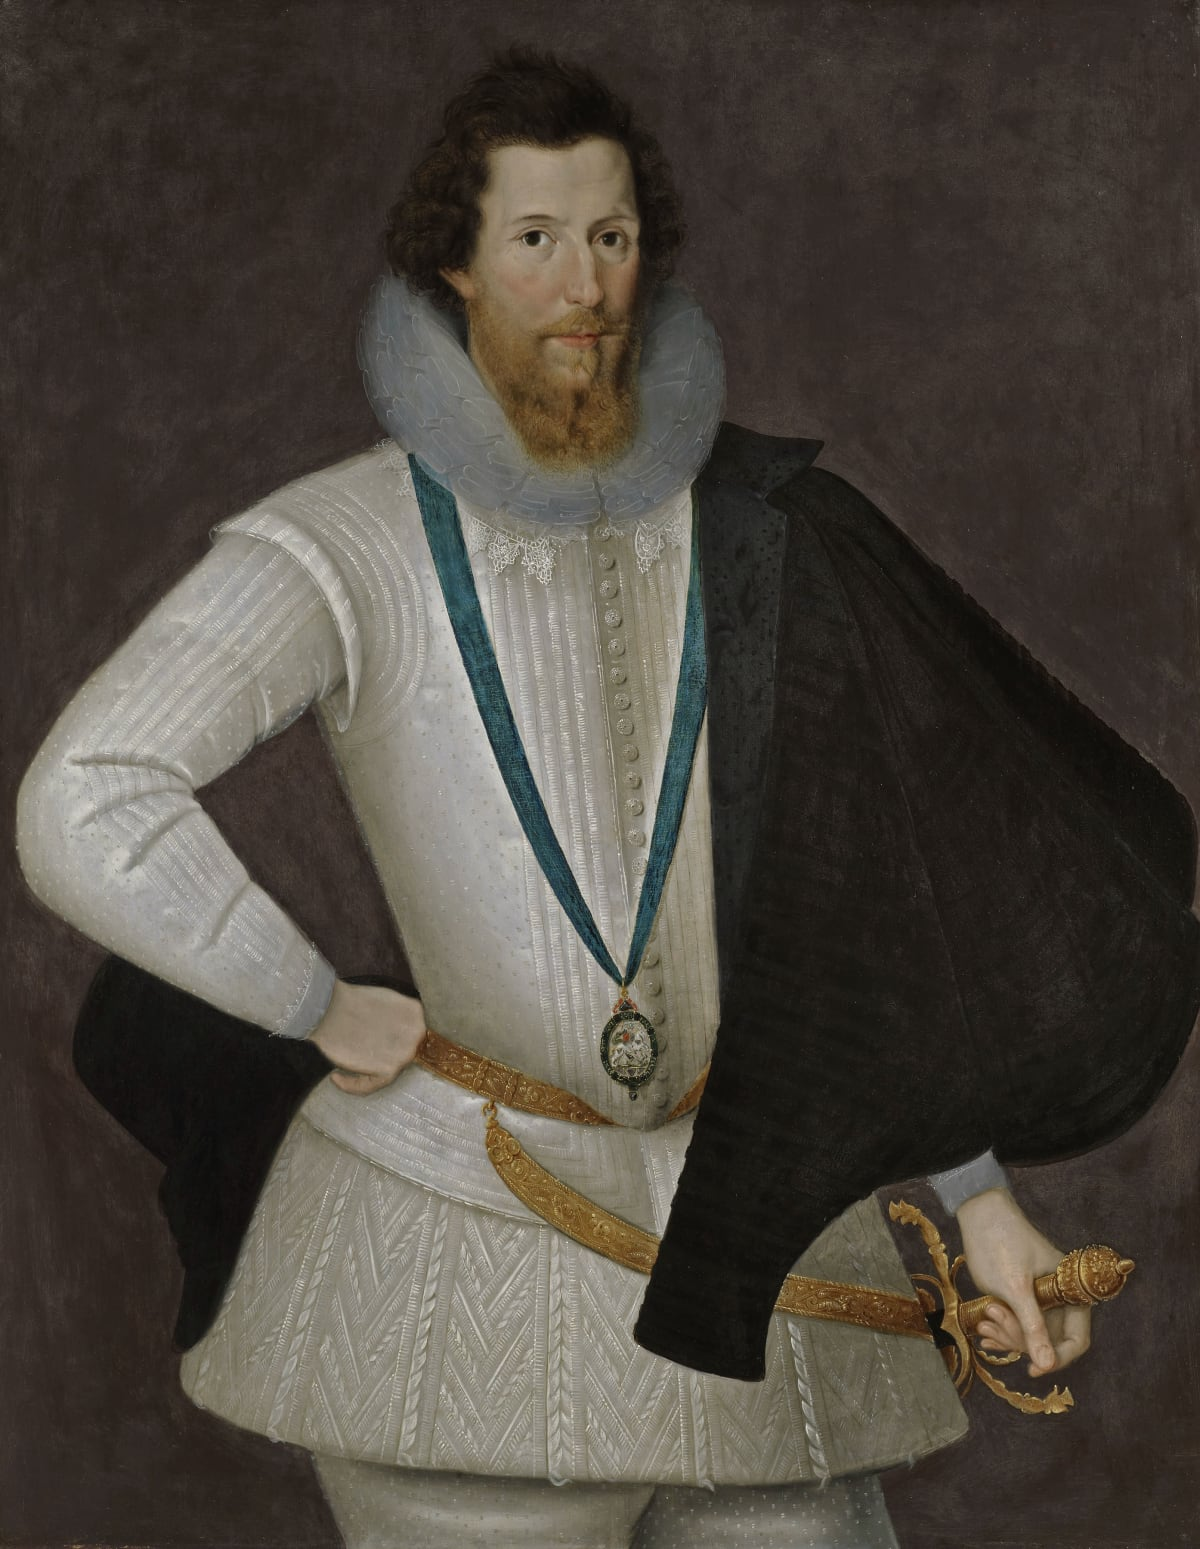 Marcus Gheeraerts the Younger (1561 – 1635) Robert Devereux, 2nd Earl of Essex (1565 – 1601), circa 1596 - 1598 Oil on panel 44 ¾ x 35 in. (113.7 x 88.9 cm.)